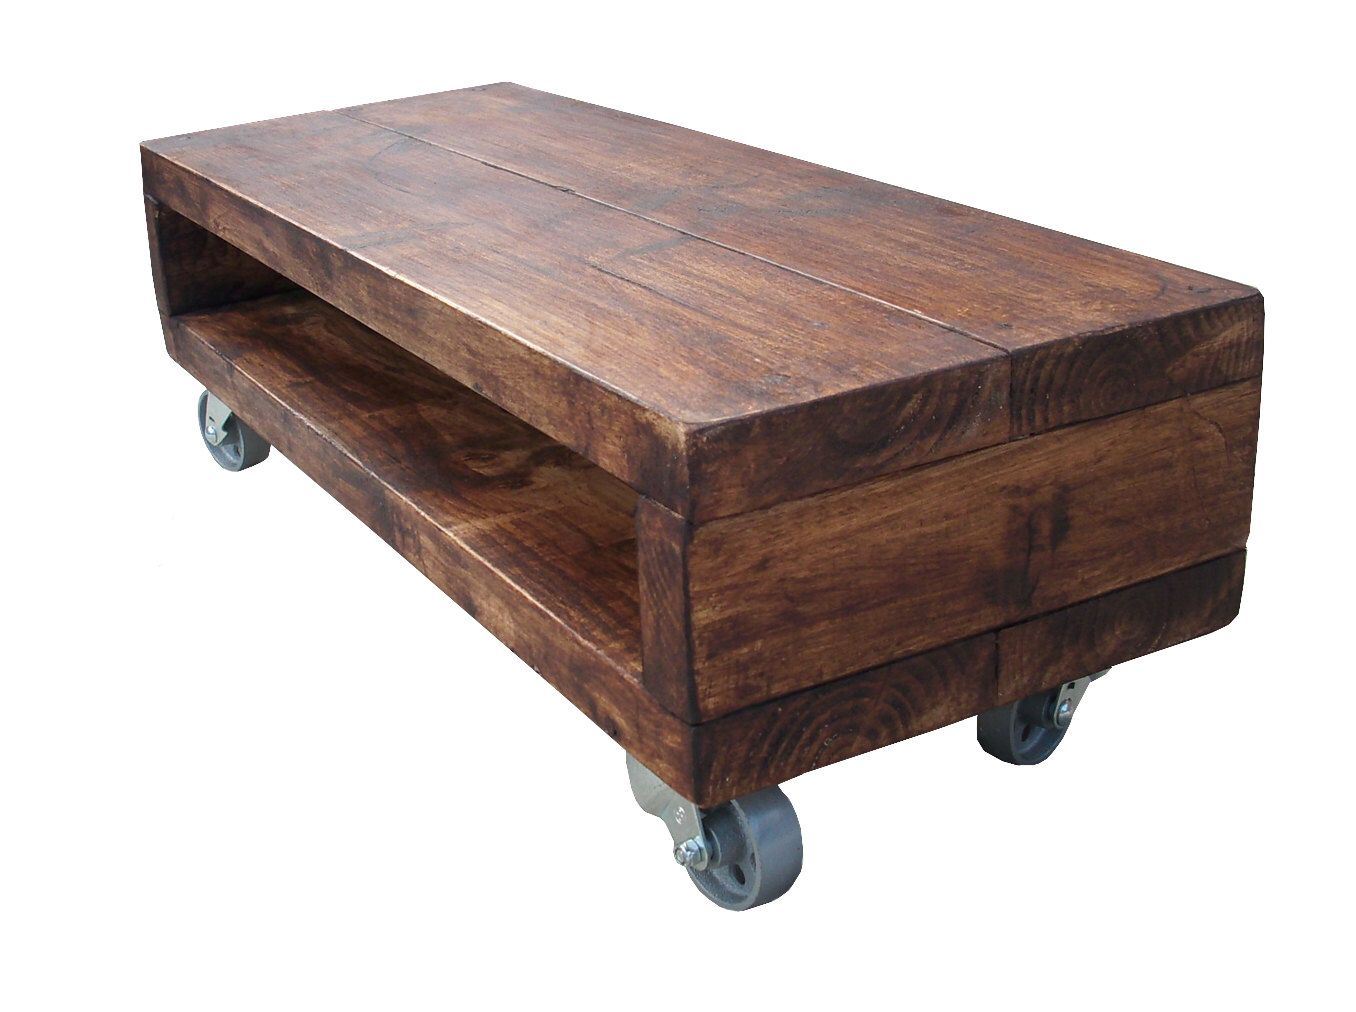 Captivating Industrial Style Rustic Coffee Table / Tv Stand Cherry Wood Finish With  Cast Industrial Swivel Wheels Part 19